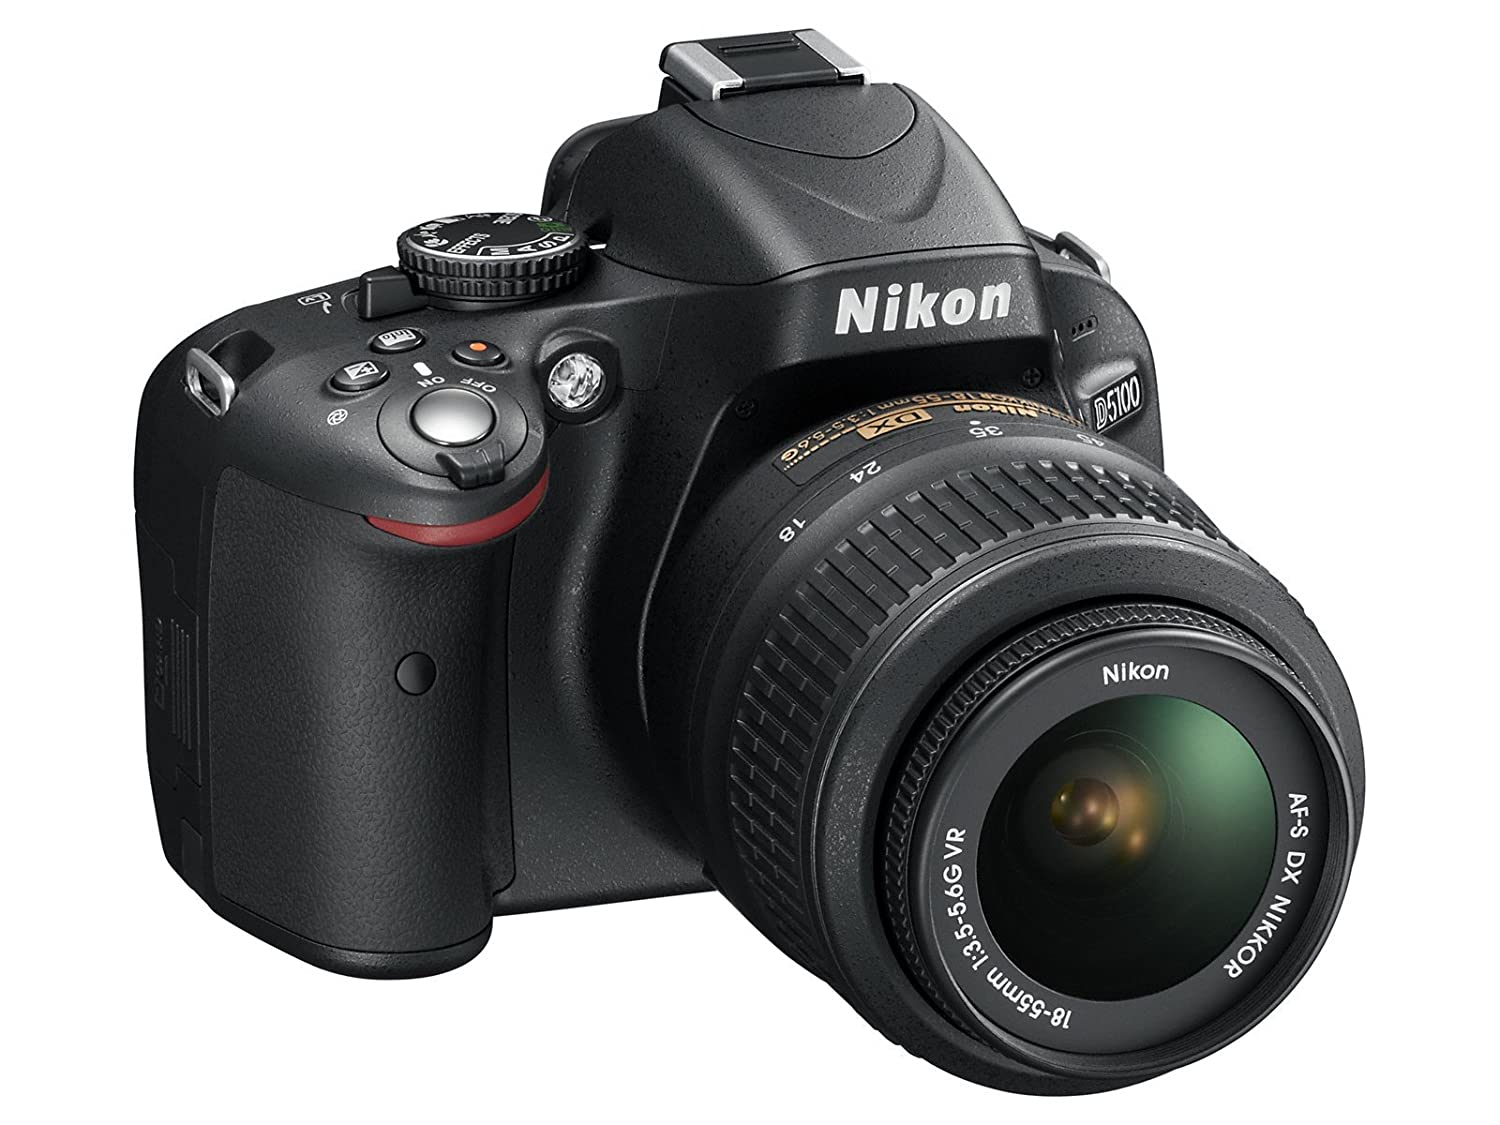 Reflex Camera Nikon D5100 Kit: review, features, reviews 97